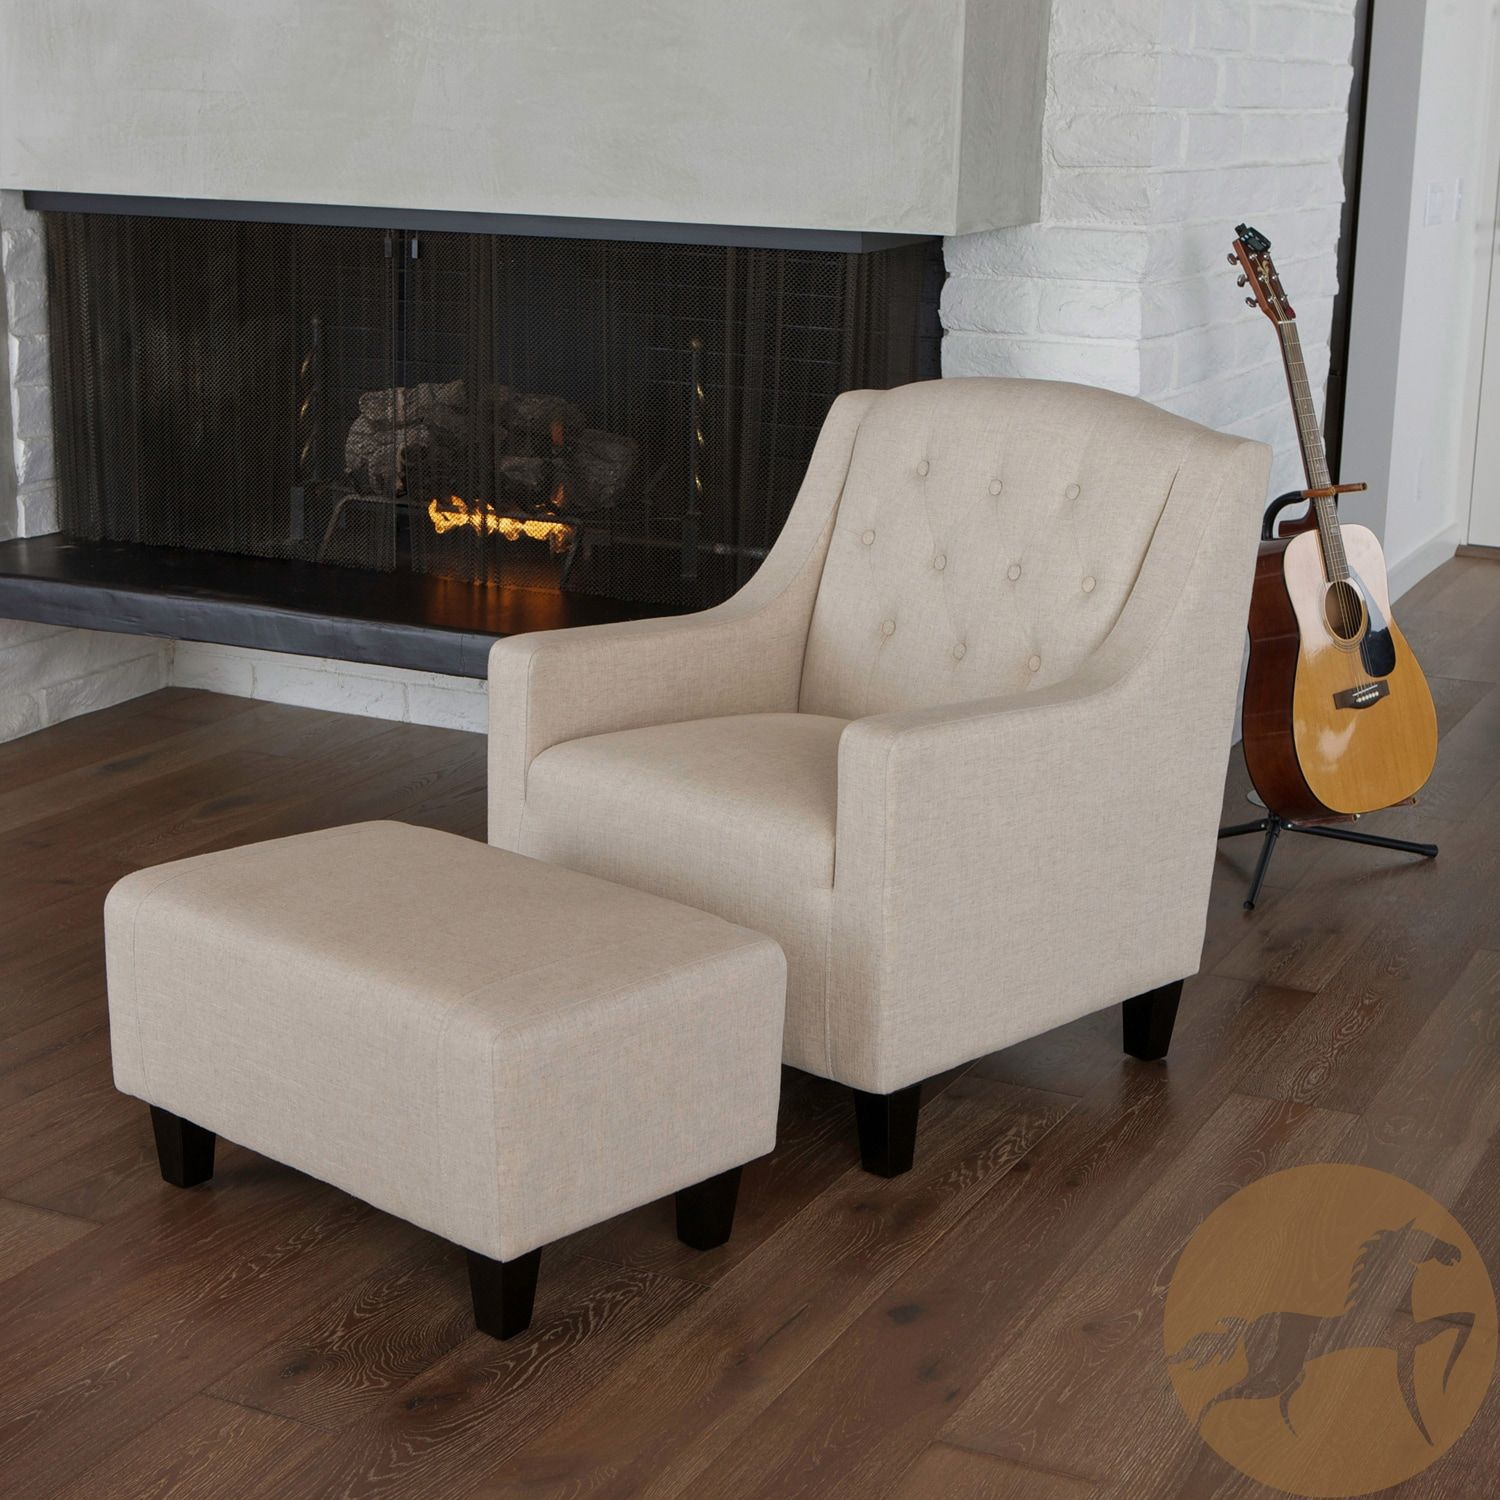 Abigail Dark Beige Club Chair & Ottoman | Products | Pinterest Pertaining To Abigail Ii Sofa Chairs (View 6 of 20)